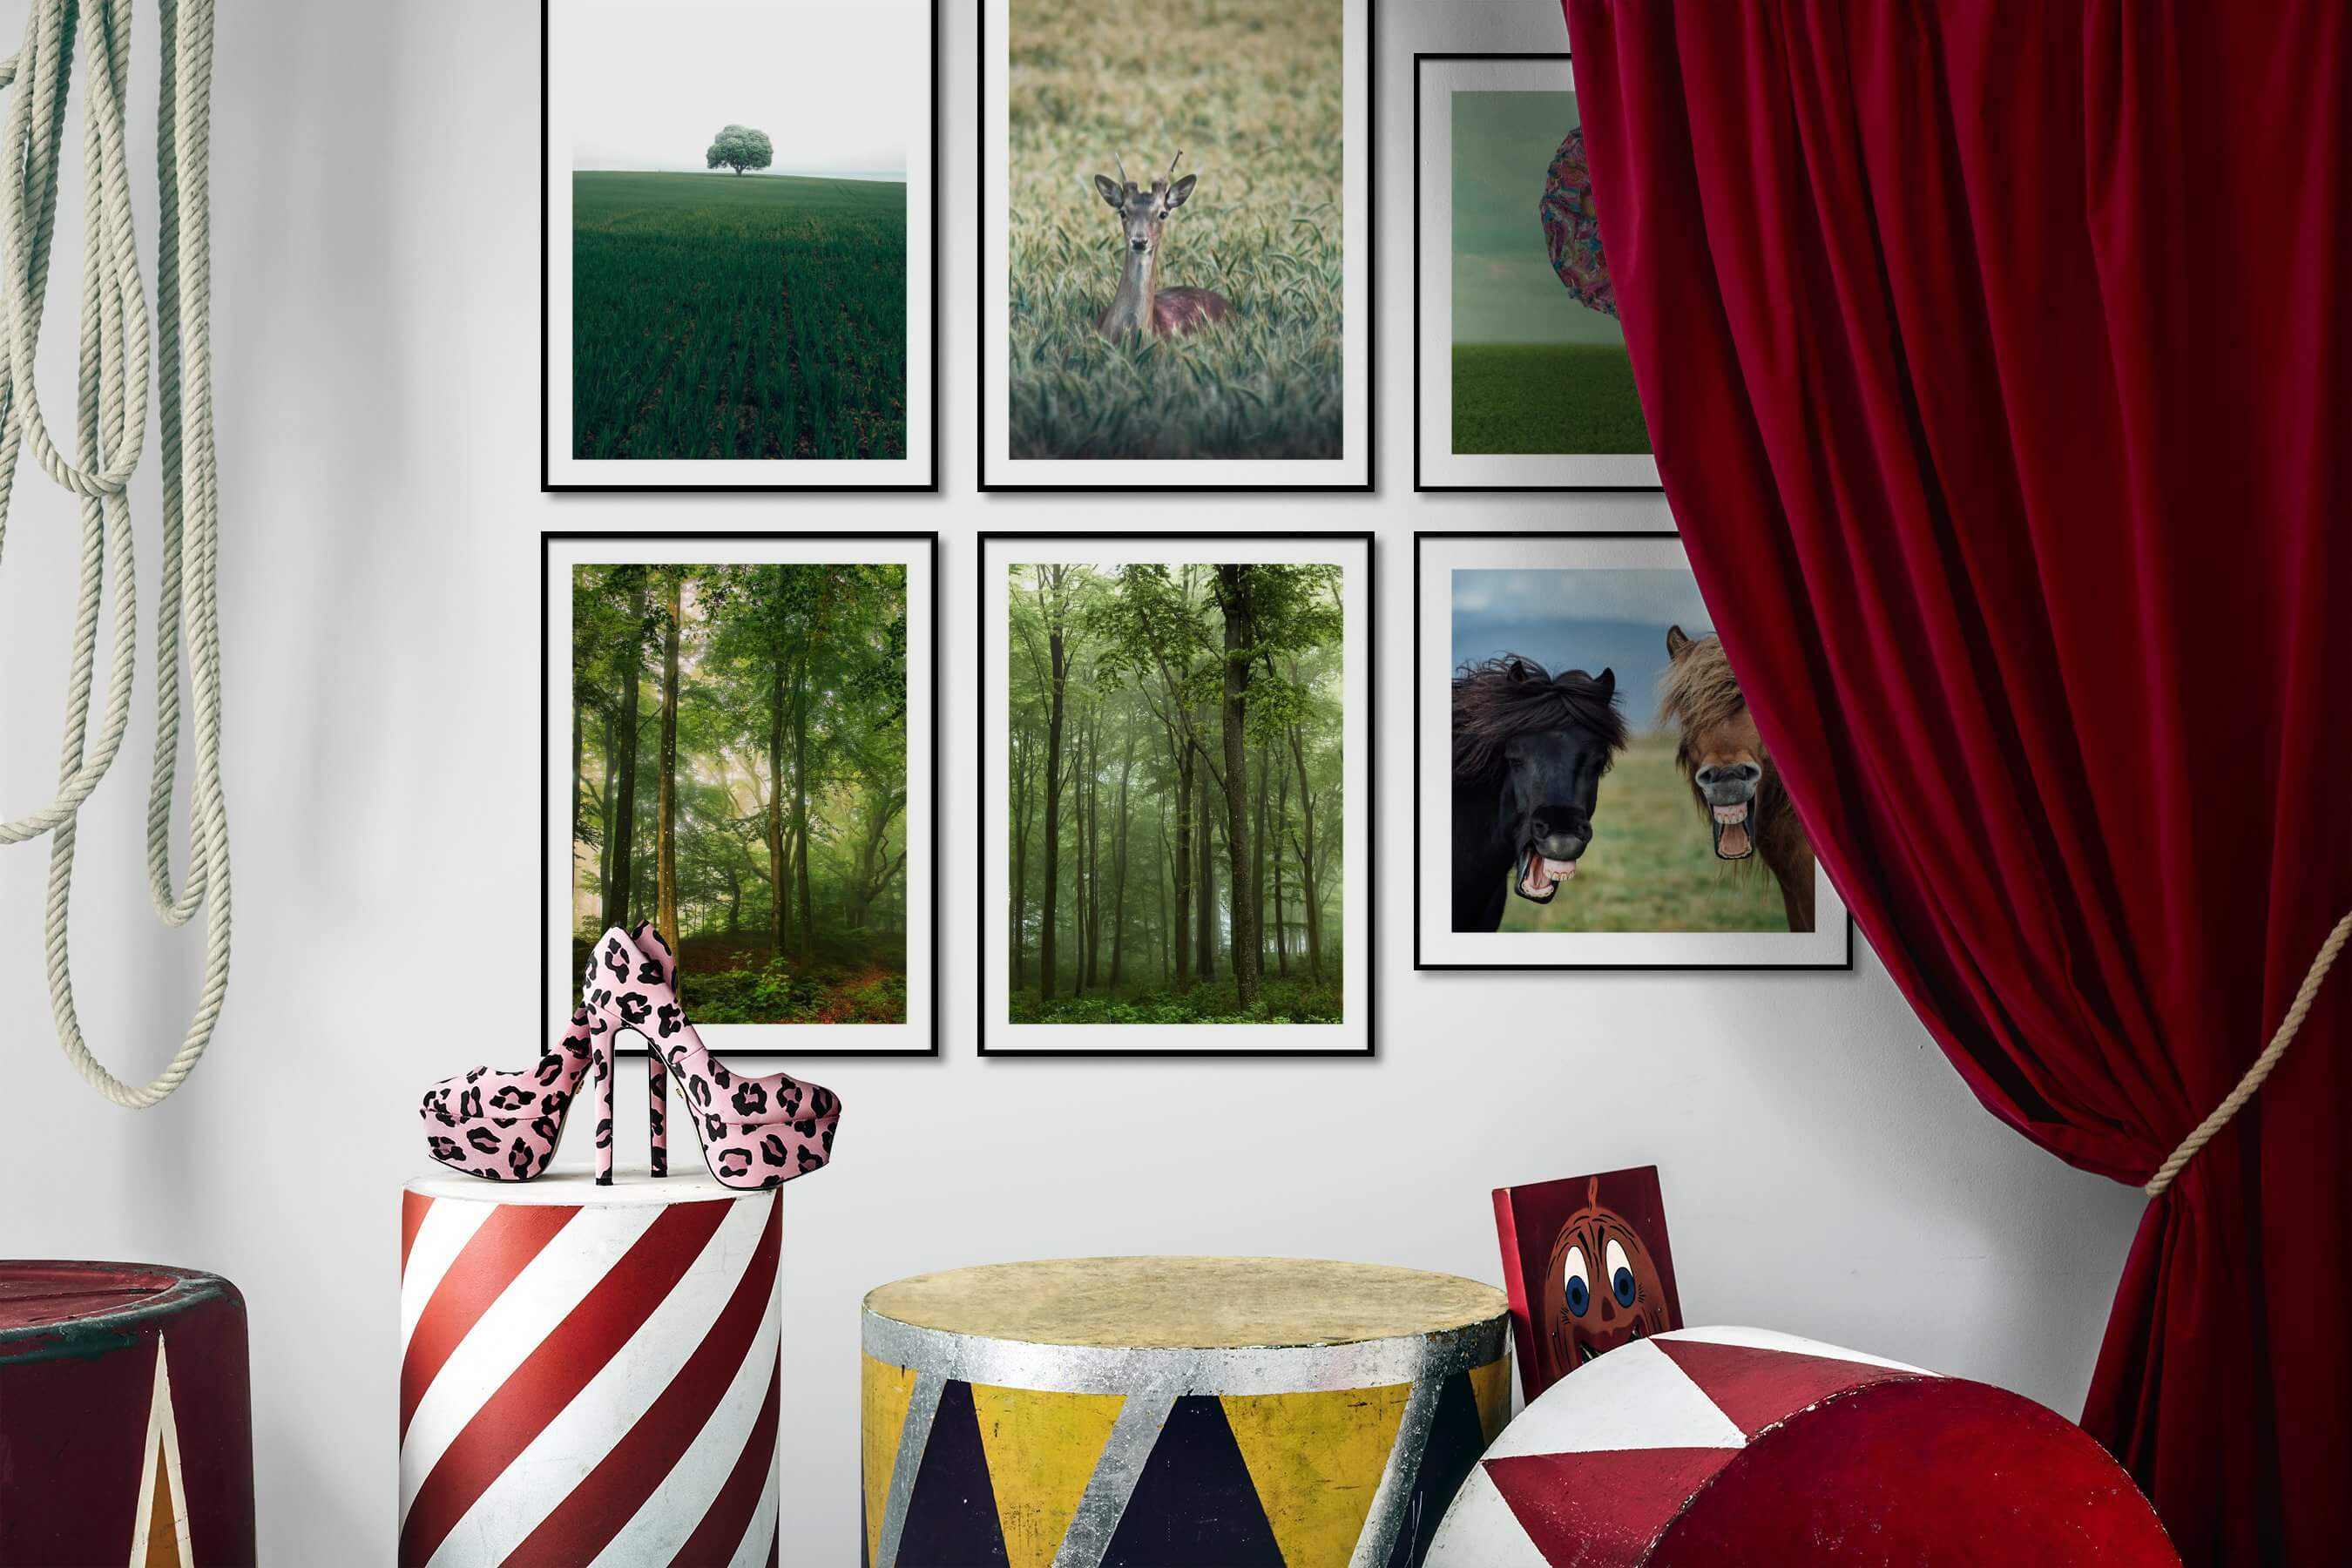 Gallery wall idea with six framed pictures arranged on a wall depicting For the Minimalist, Country Life, Animals, Nature, Artsy, and Flowers & Plants